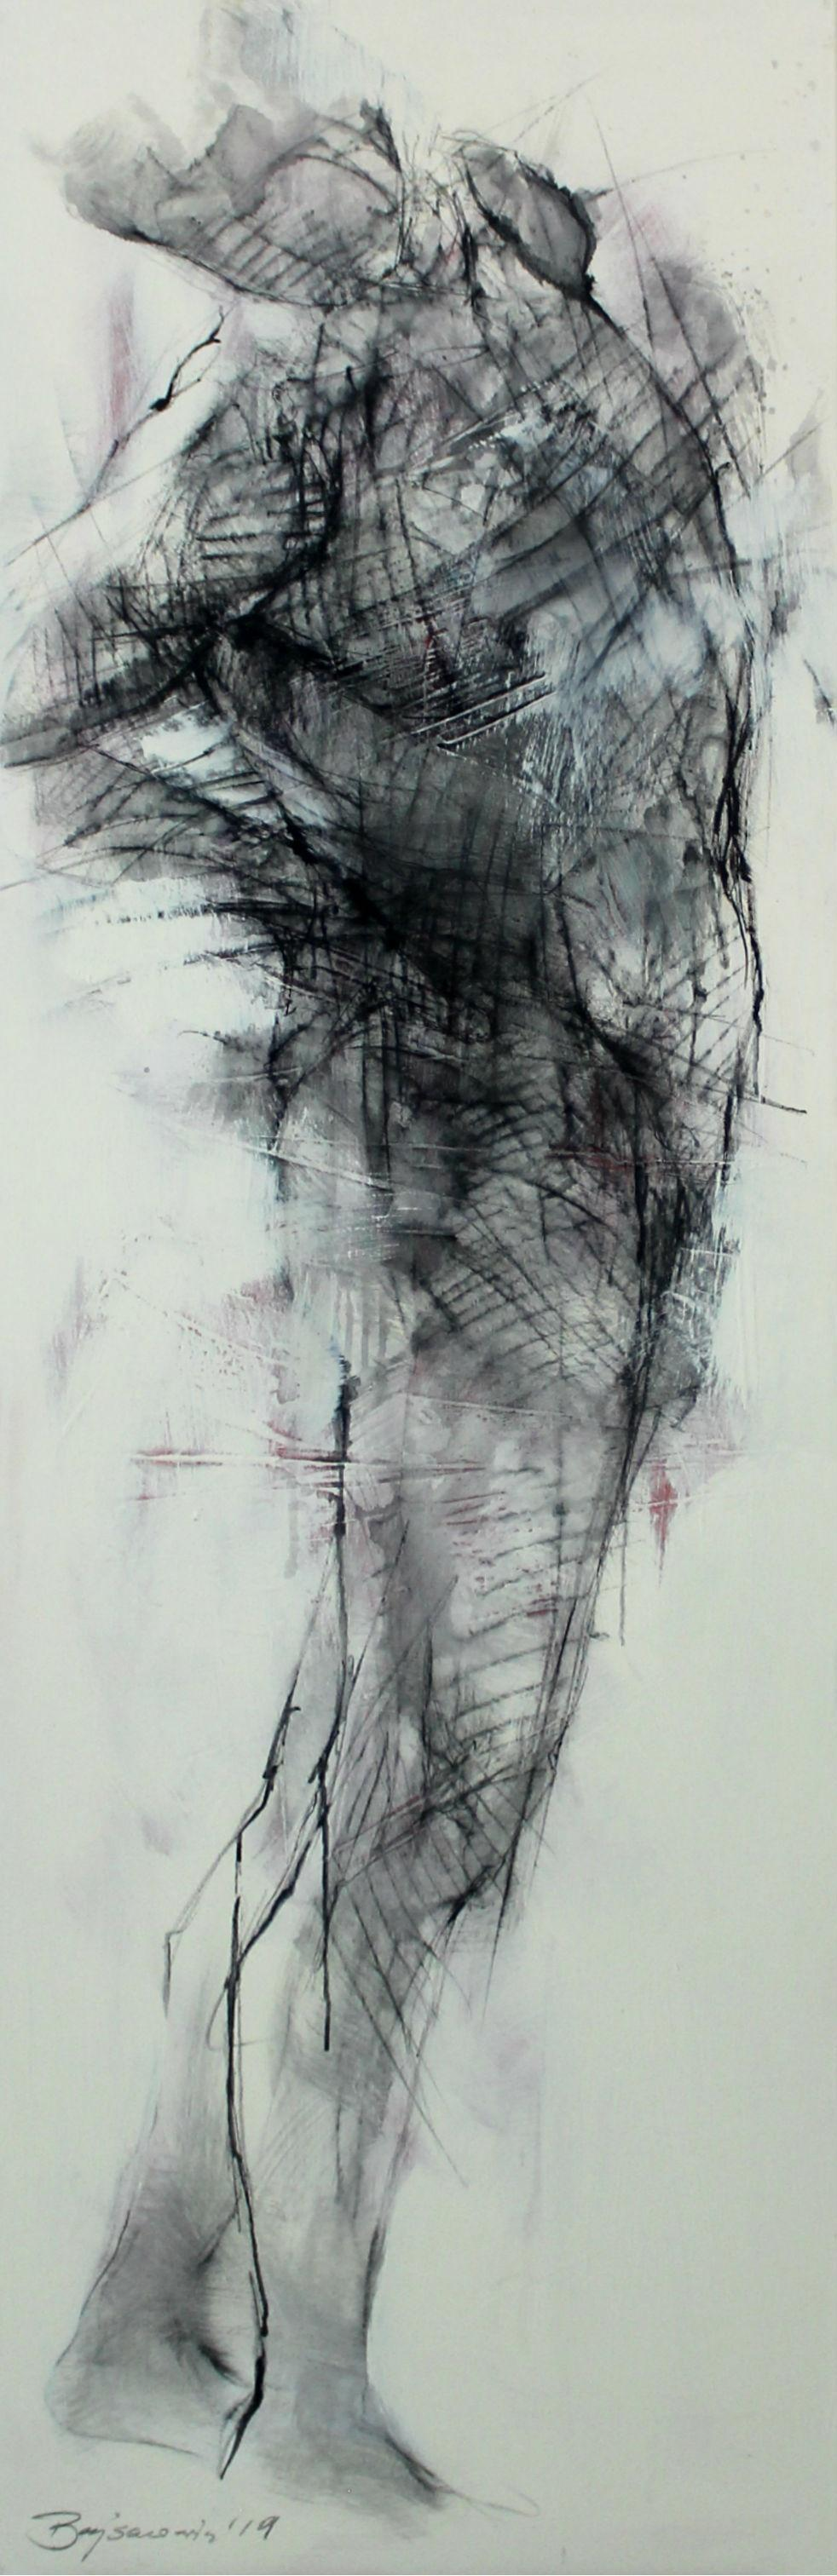 Nude - XXI Century, Contemporary Oil Painting, Black and White, Figurative